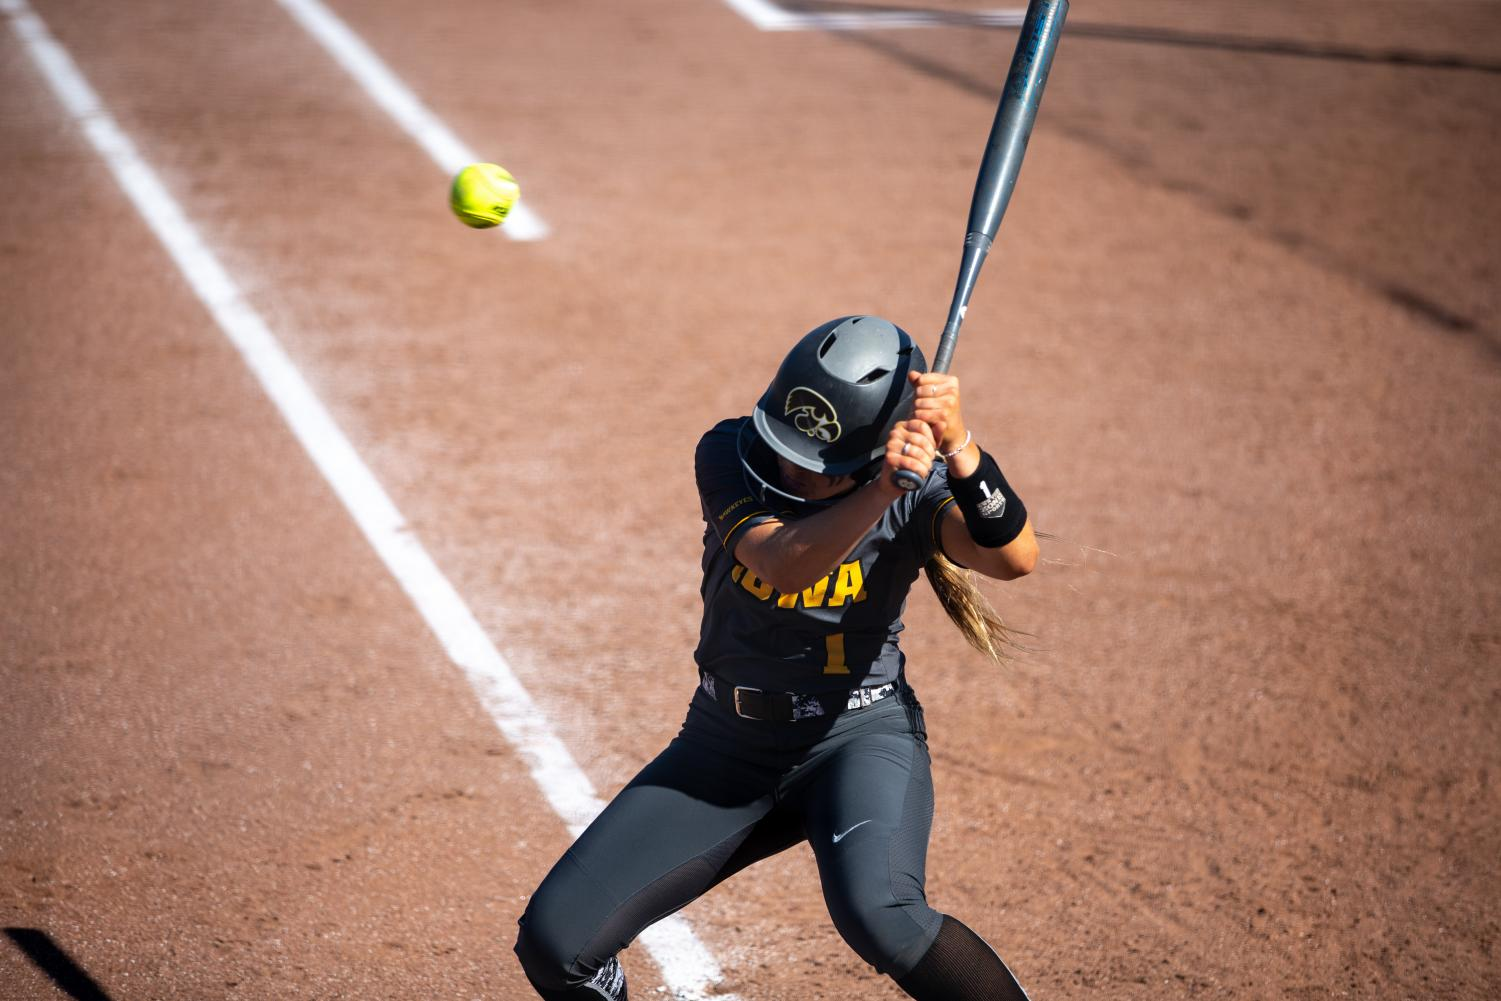 Iowa+infielder+Cameron+Cecil+avoids+a+ball+to+the+head+during+the+game+against+Nebraska+at+the+Bob+Pearl+Softball+Field+on+Wednesday%2C+April+24%2C+2019.+The+Hawkeyes+were+defeated+7-5+by+the+Huskers.+